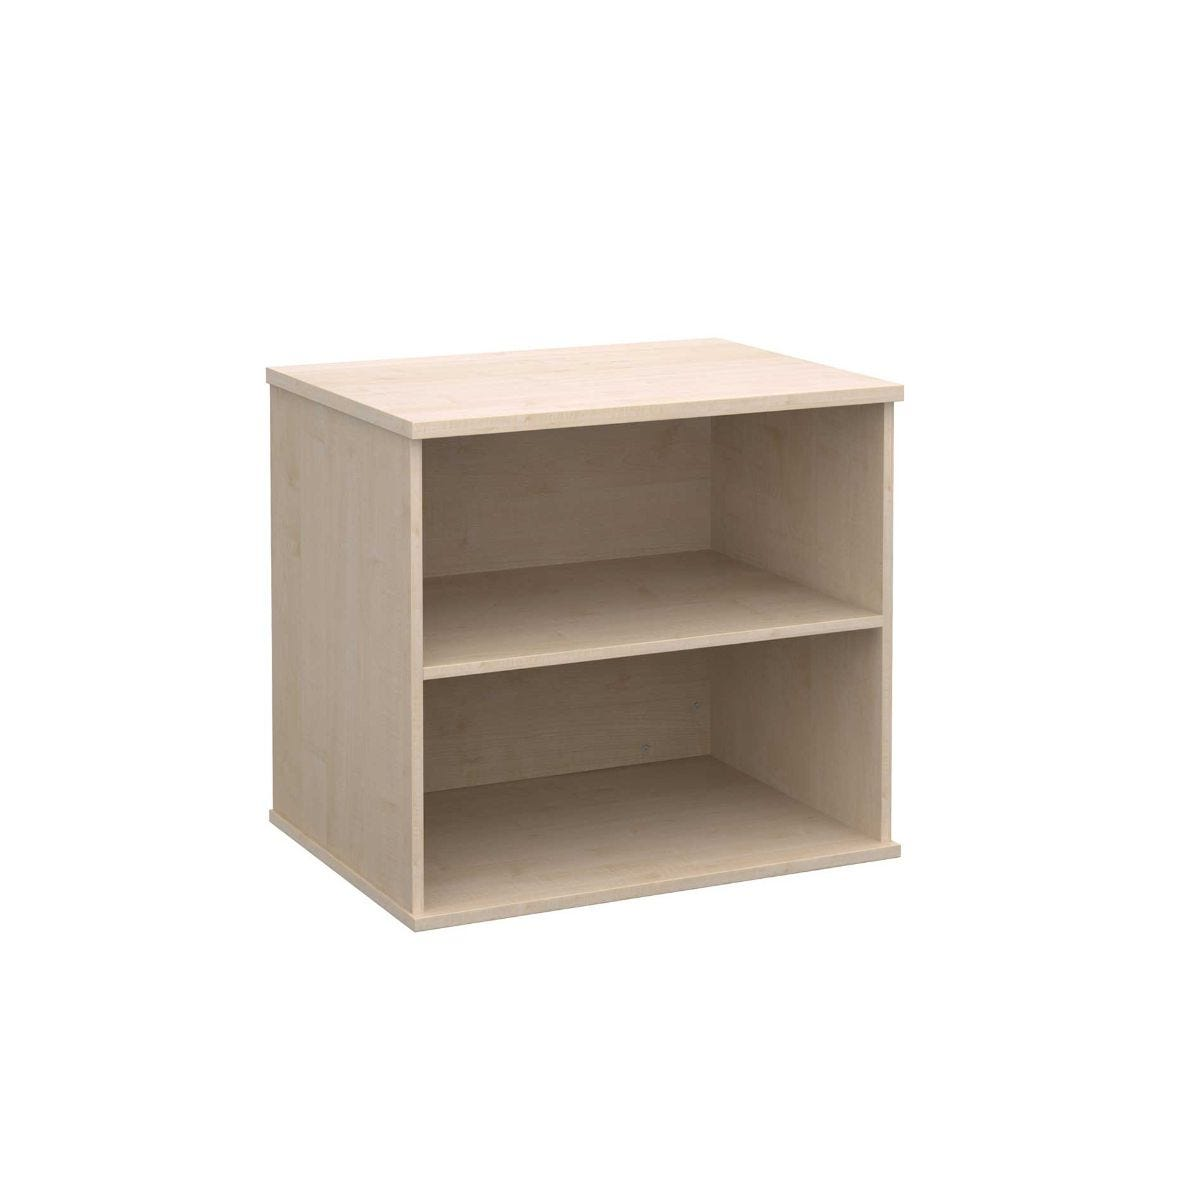 Desk High Bookcase with 1 Shelf, Maple